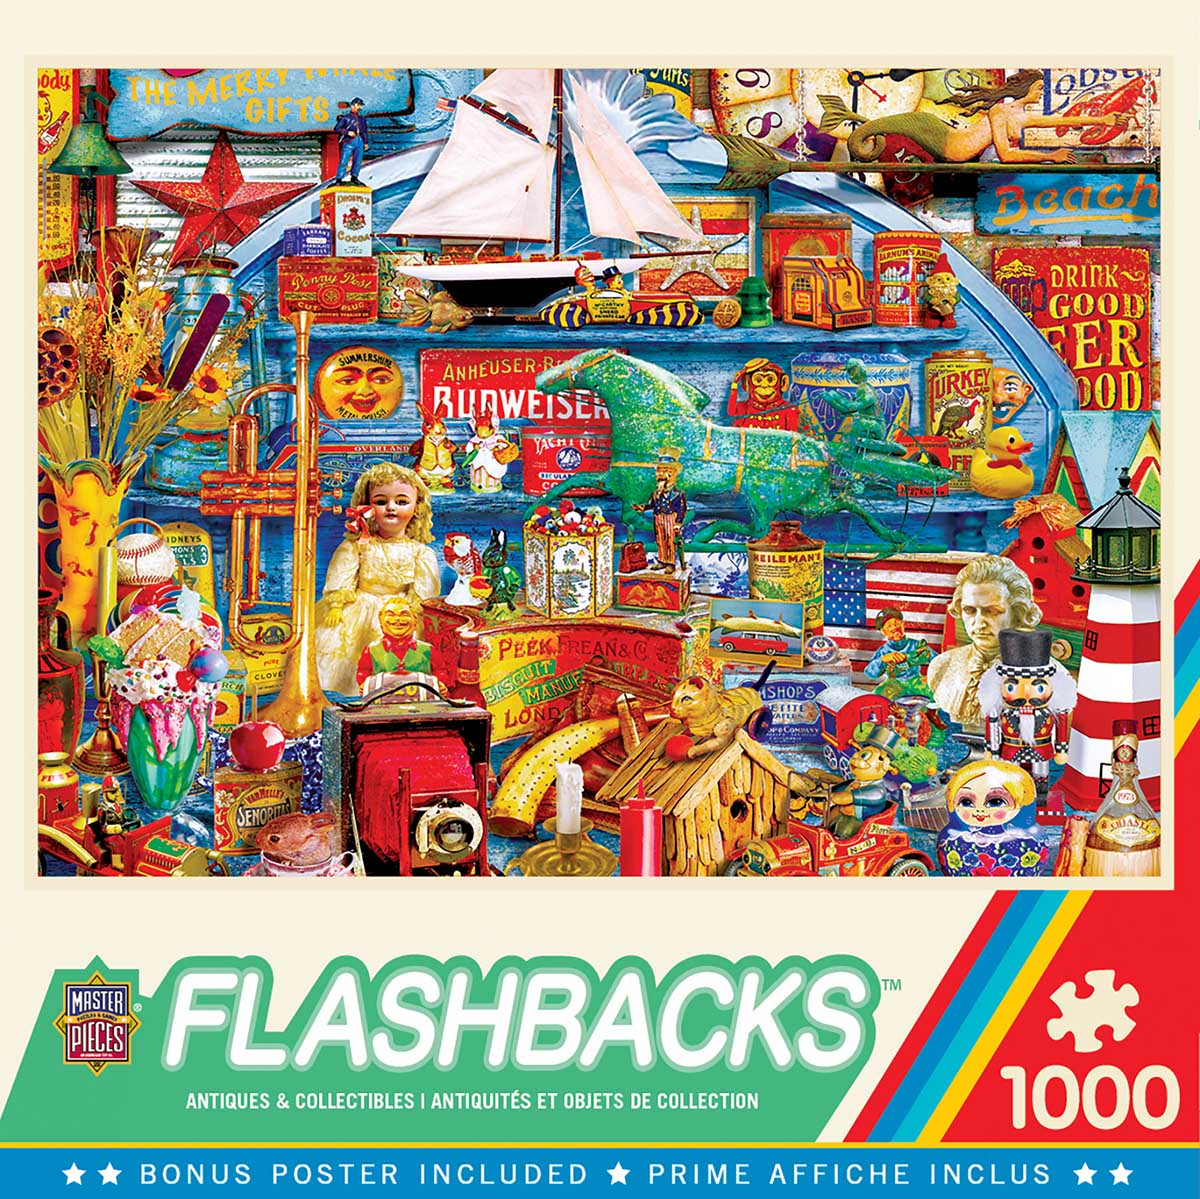 Antiques & Collectibles Nostalgic / Retro Jigsaw Puzzle